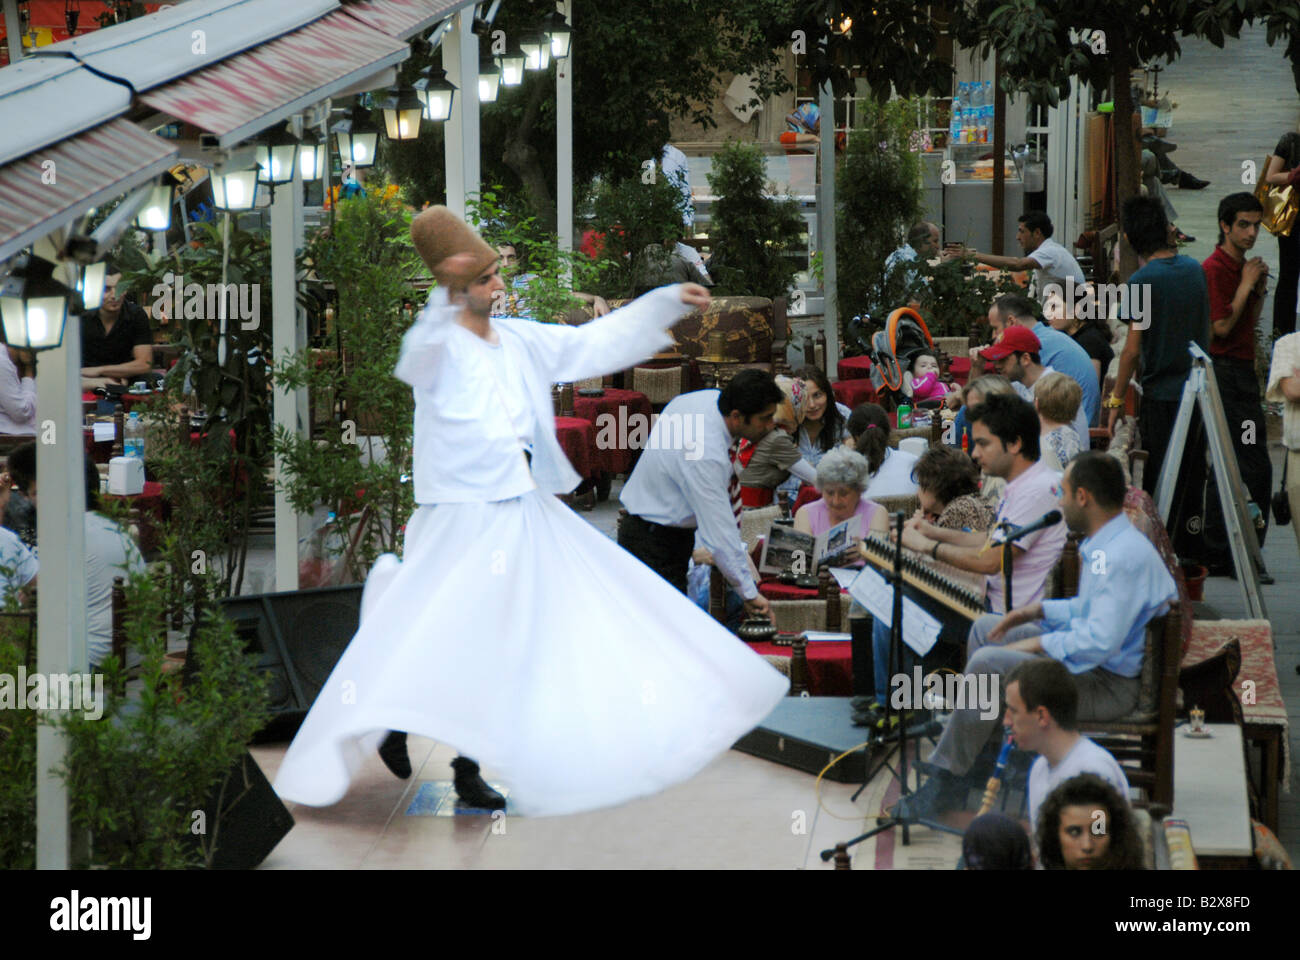 A Dervish dancer performing in a restaurant - Stock Image